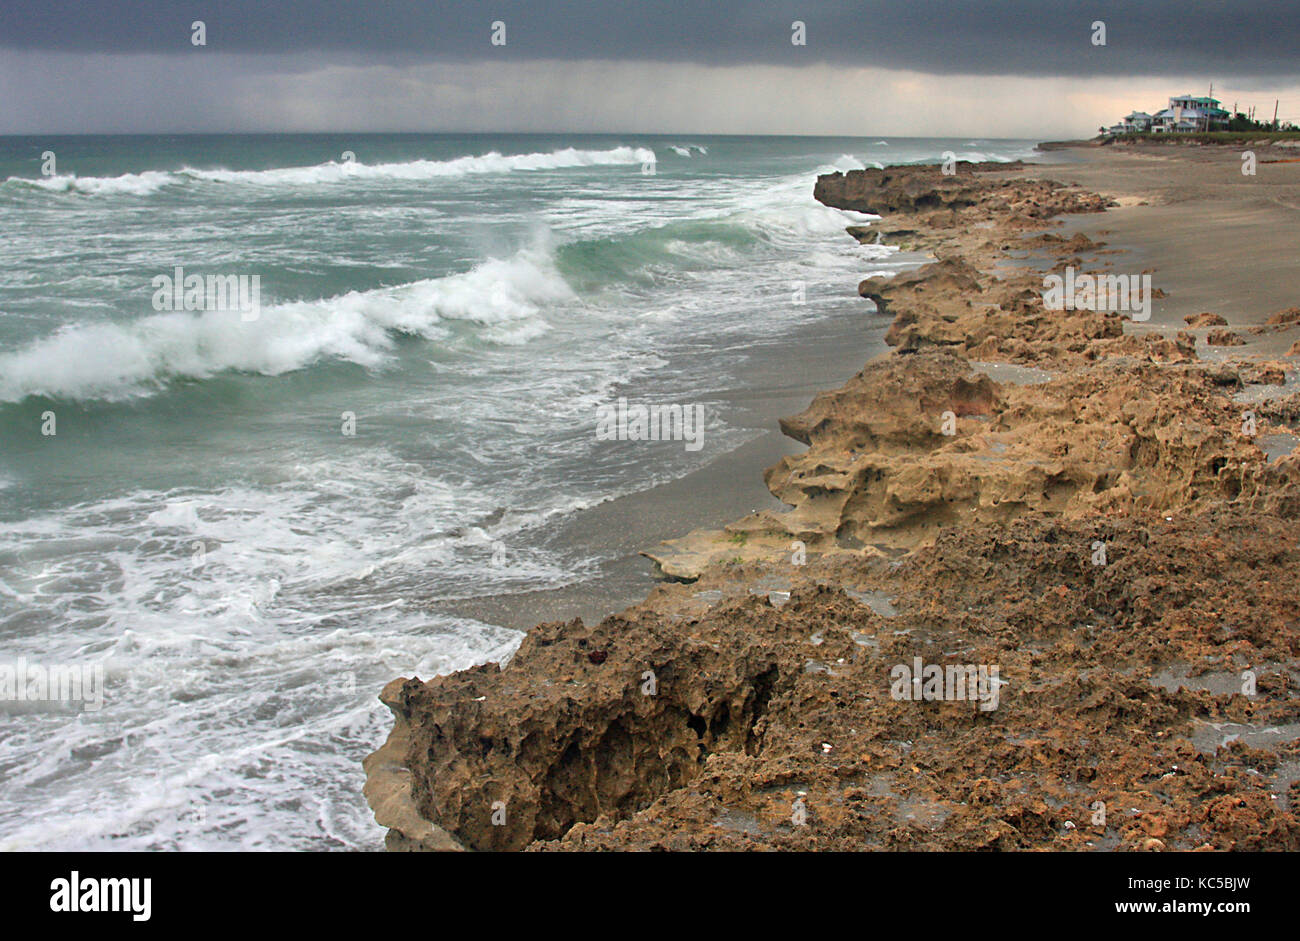 Hutchinson Island Stock Photos & Hutchinson Island Stock Images - Alamy